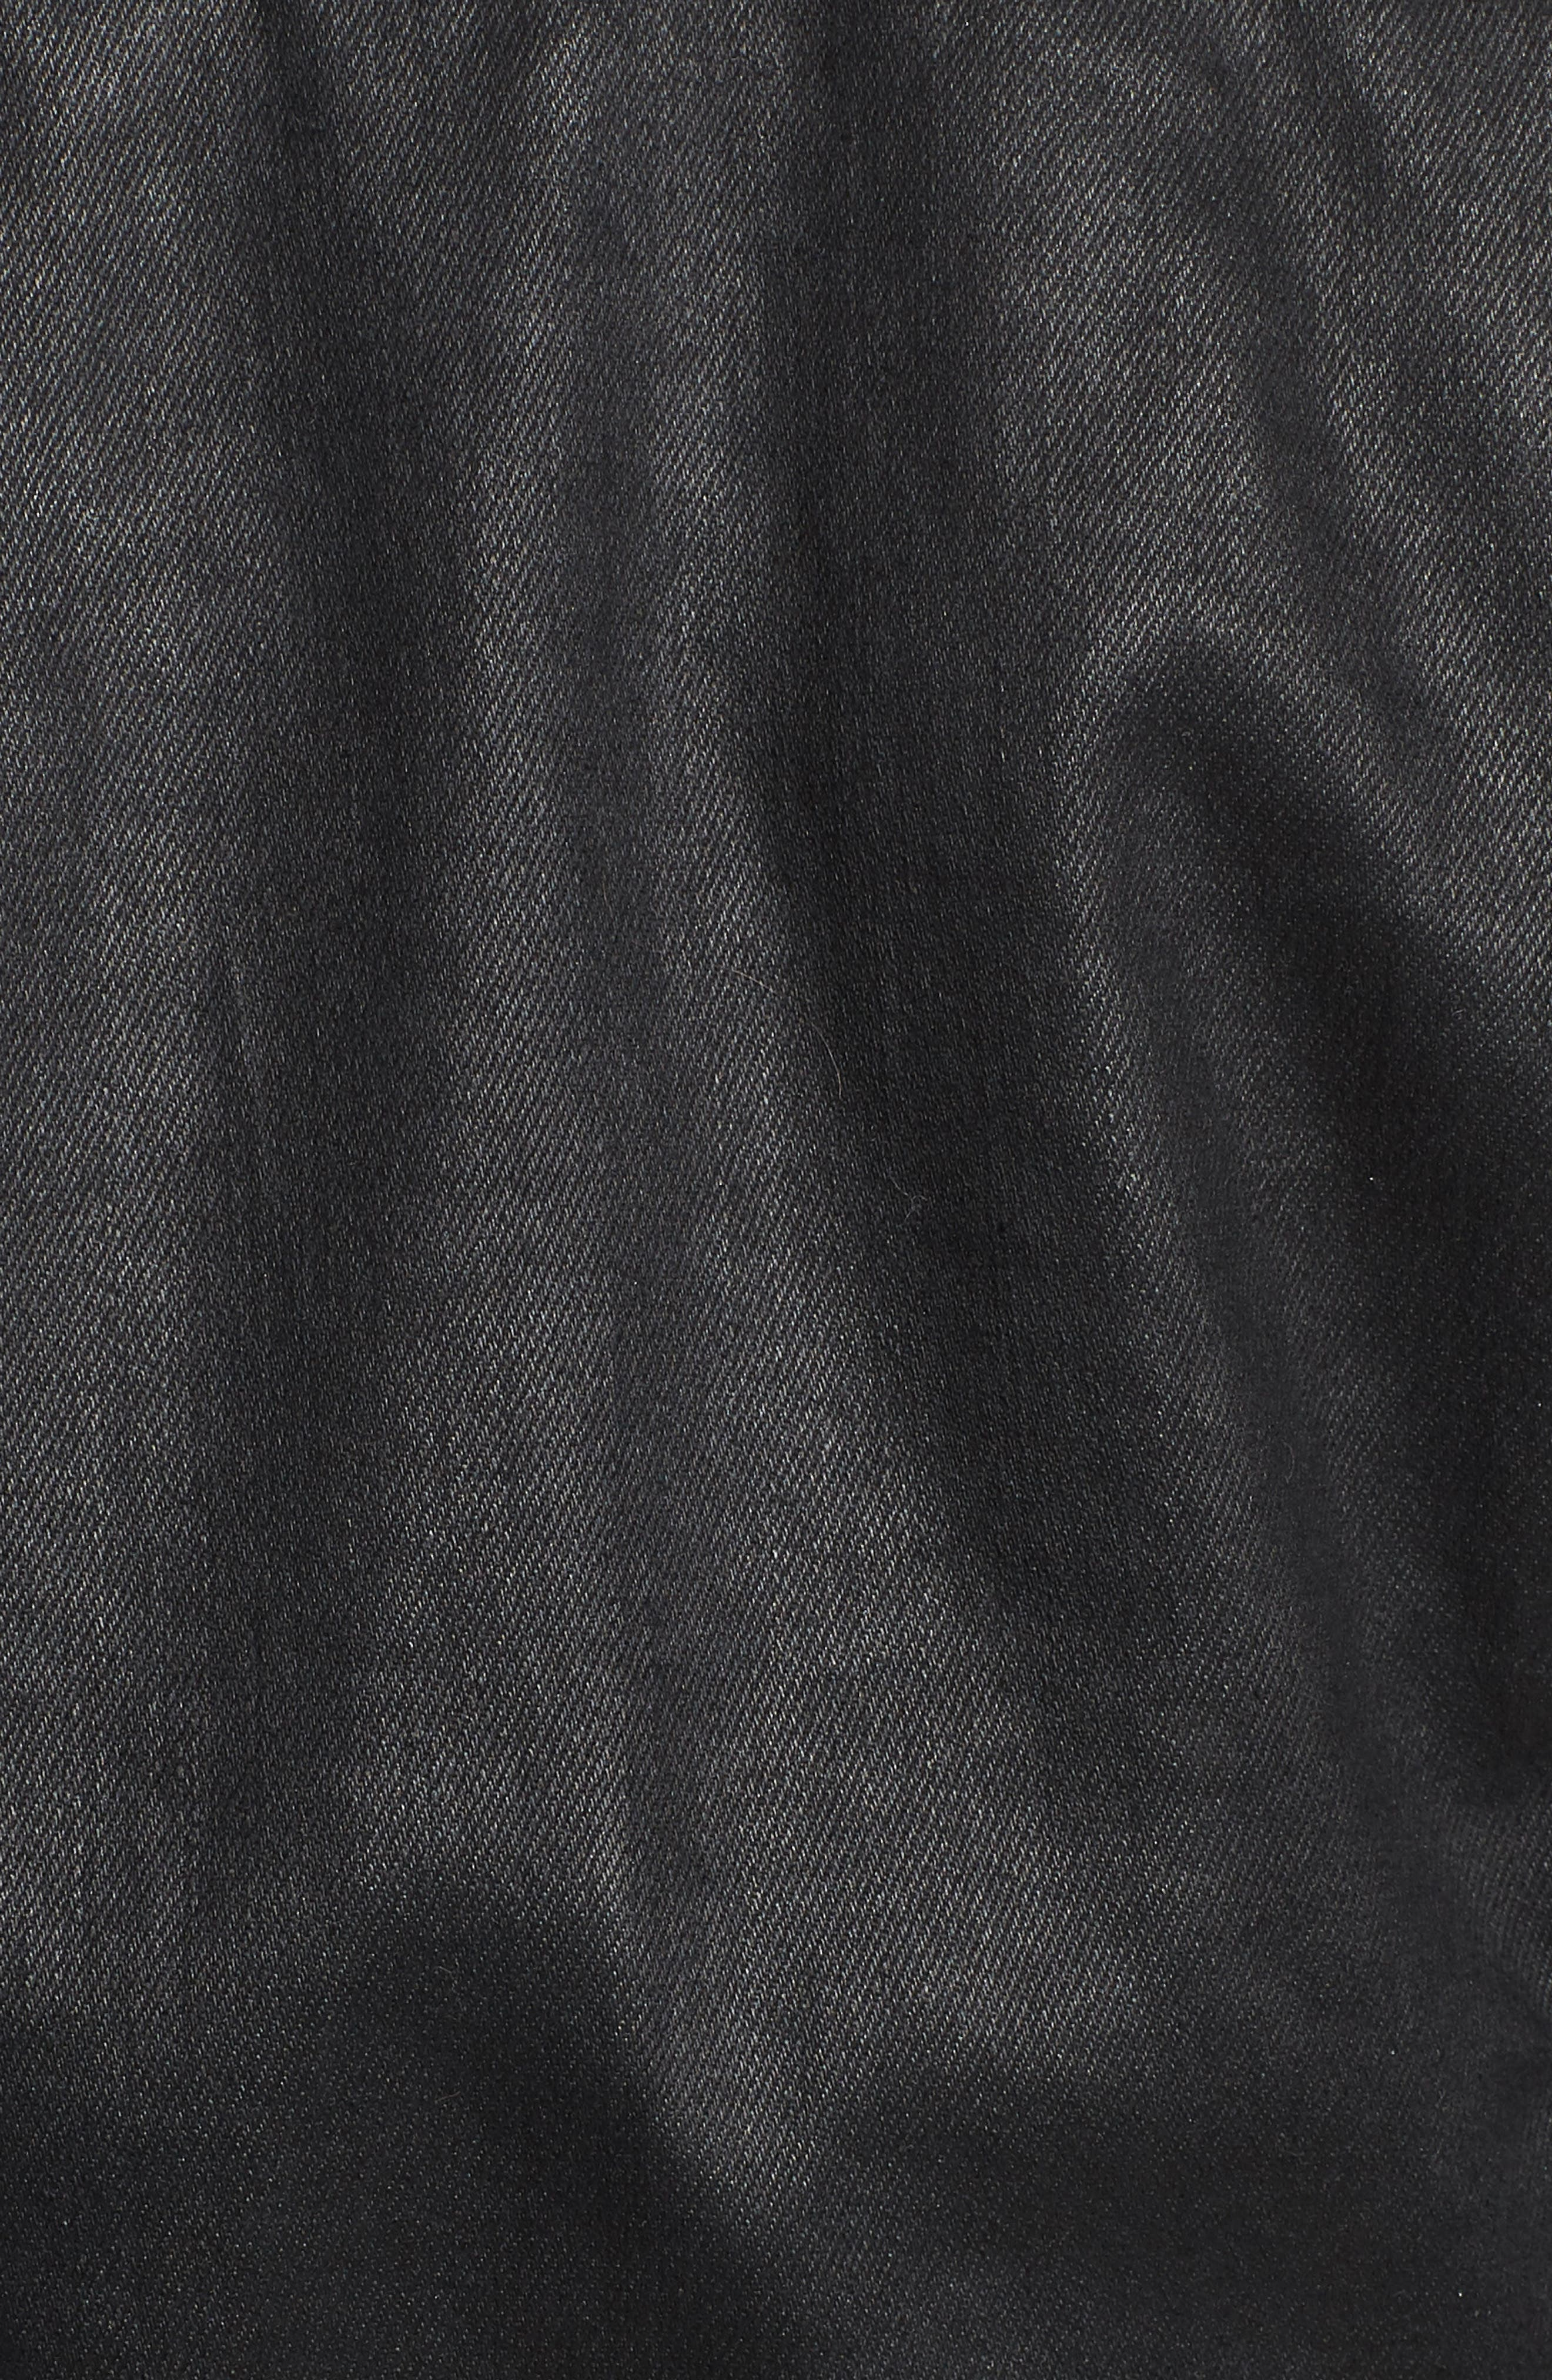 'Robyn' Denim Jacket,                             Alternate thumbnail 7, color,                             LACQUERED PURE BLACK